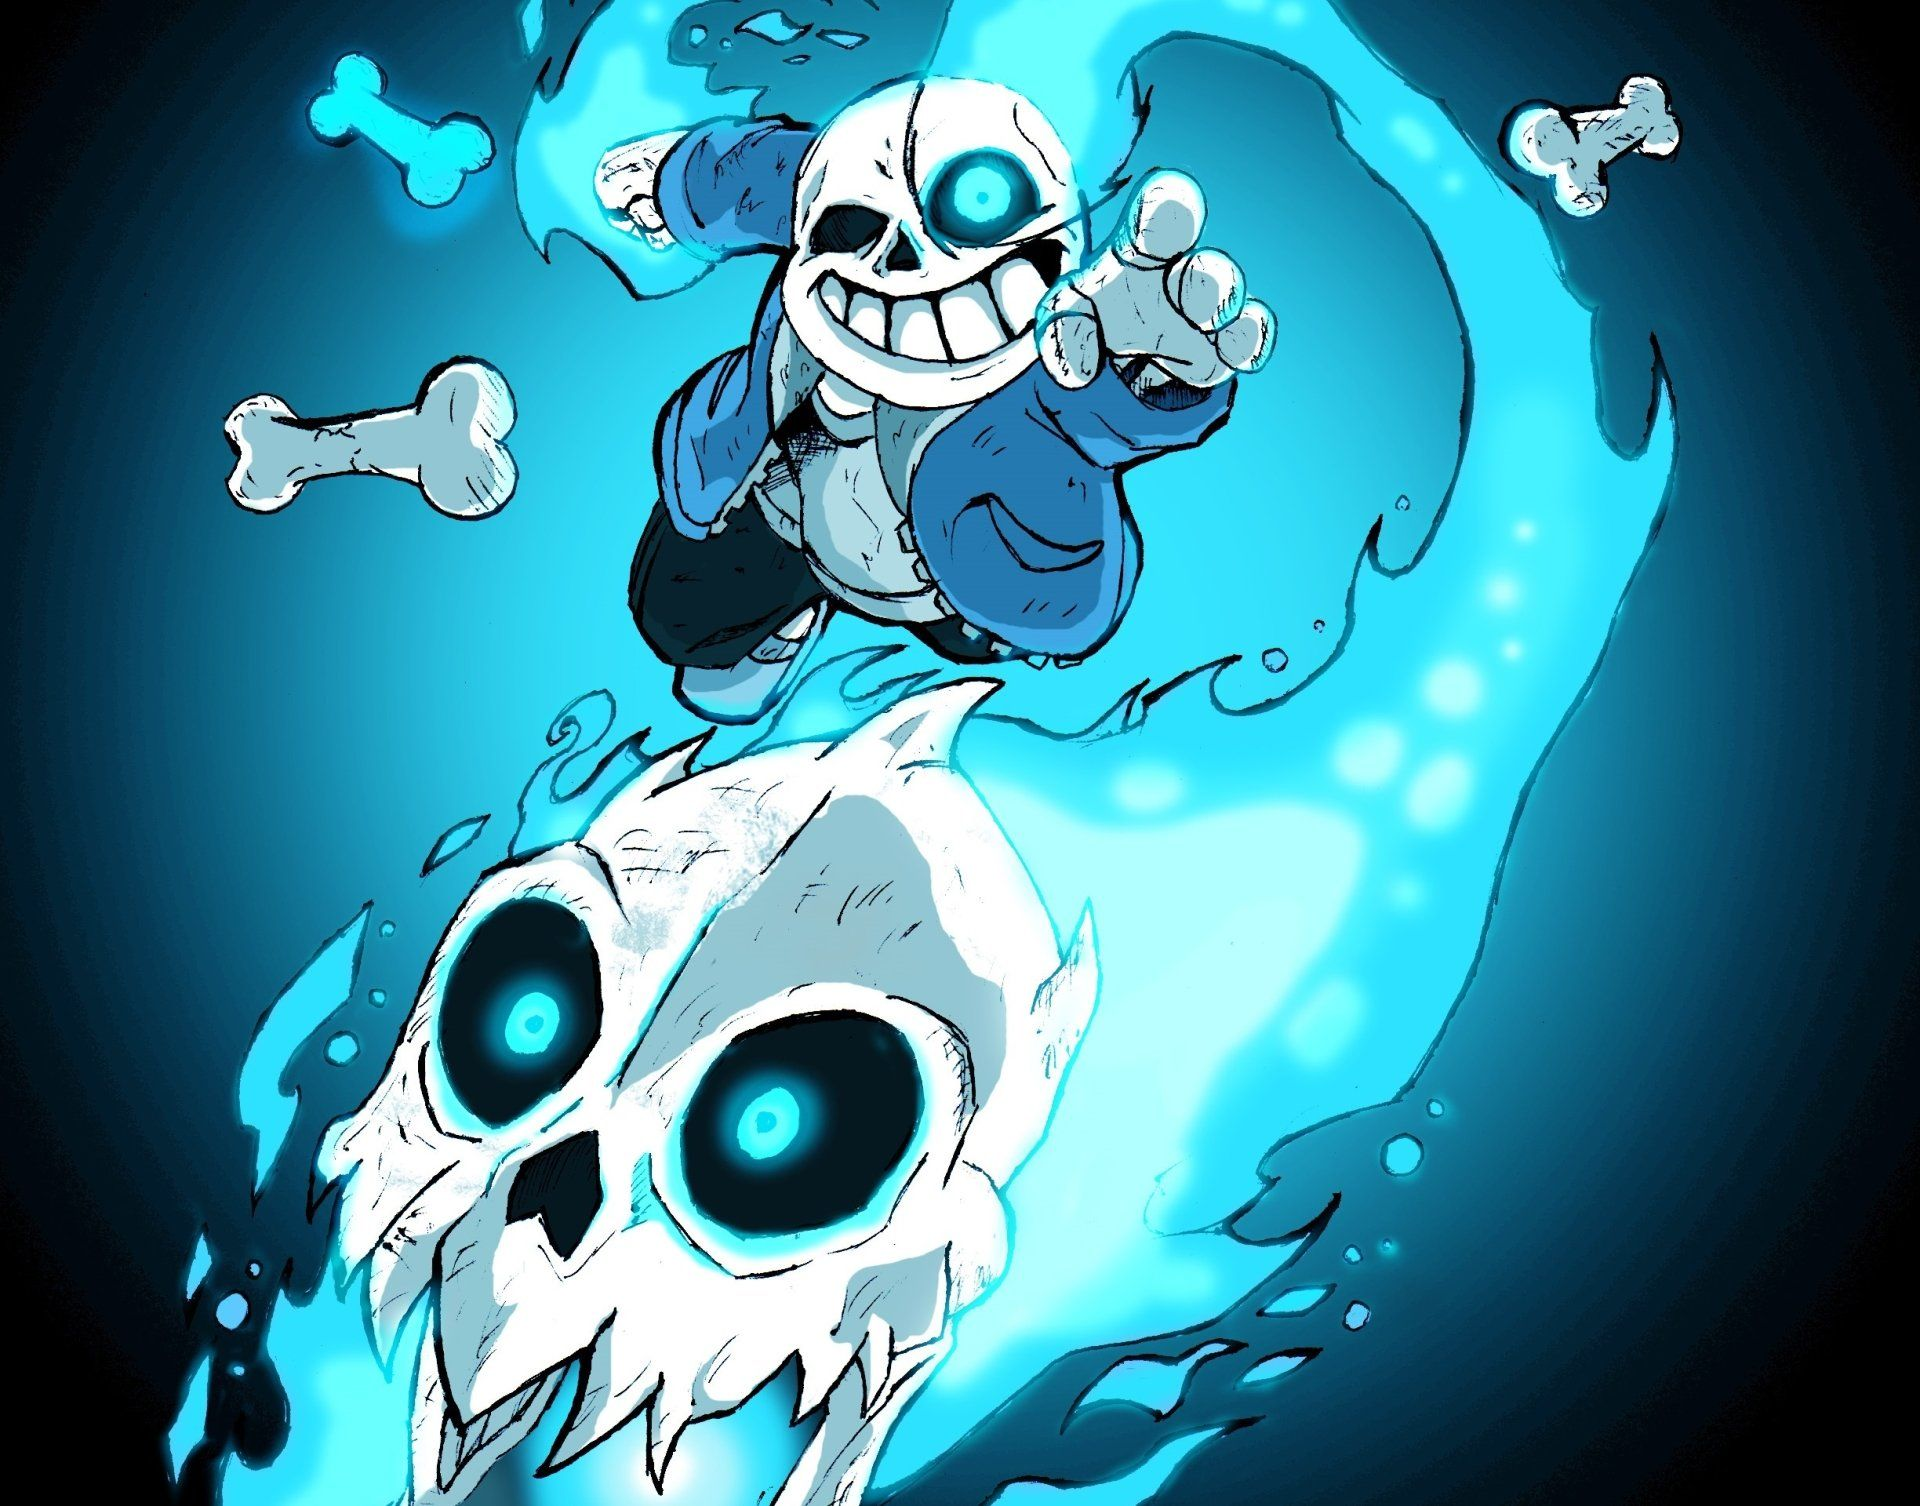 undertale sans and frisk undertale images Sans listening